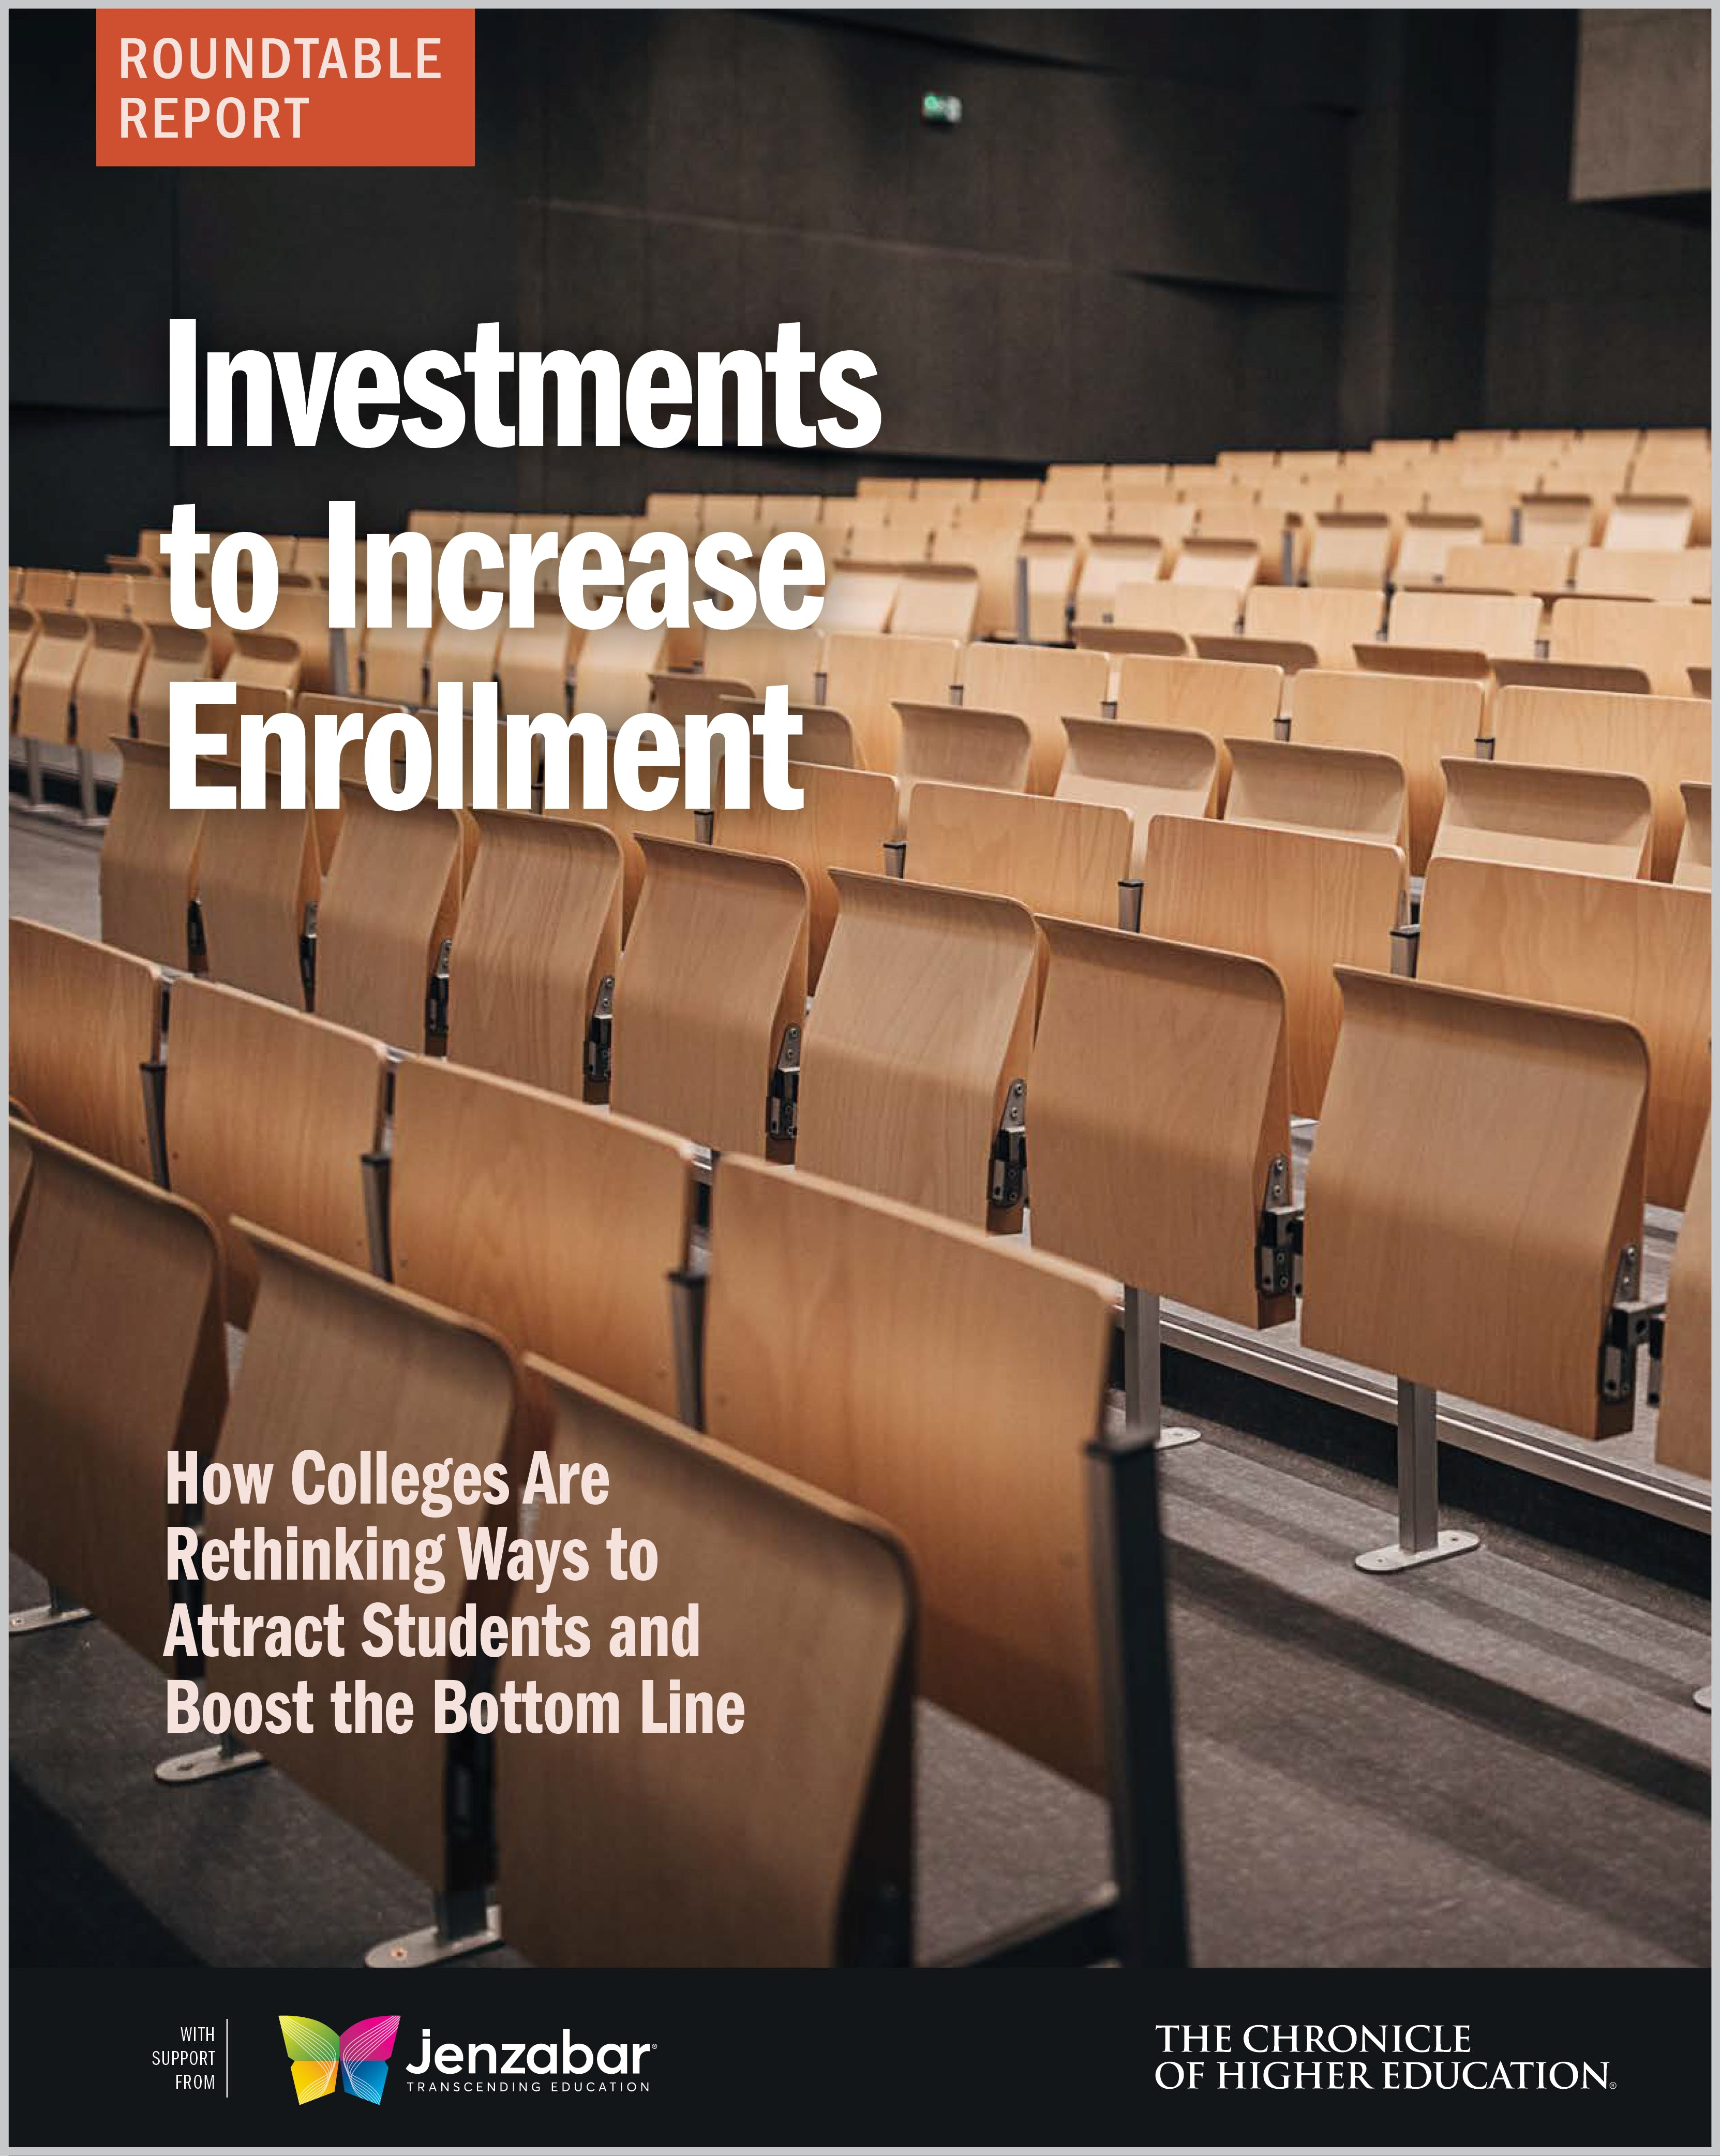 Investments to Increase Enrollment: How Colleges Are Rethinking Ways to Attract Students and Boost the Bottom Line